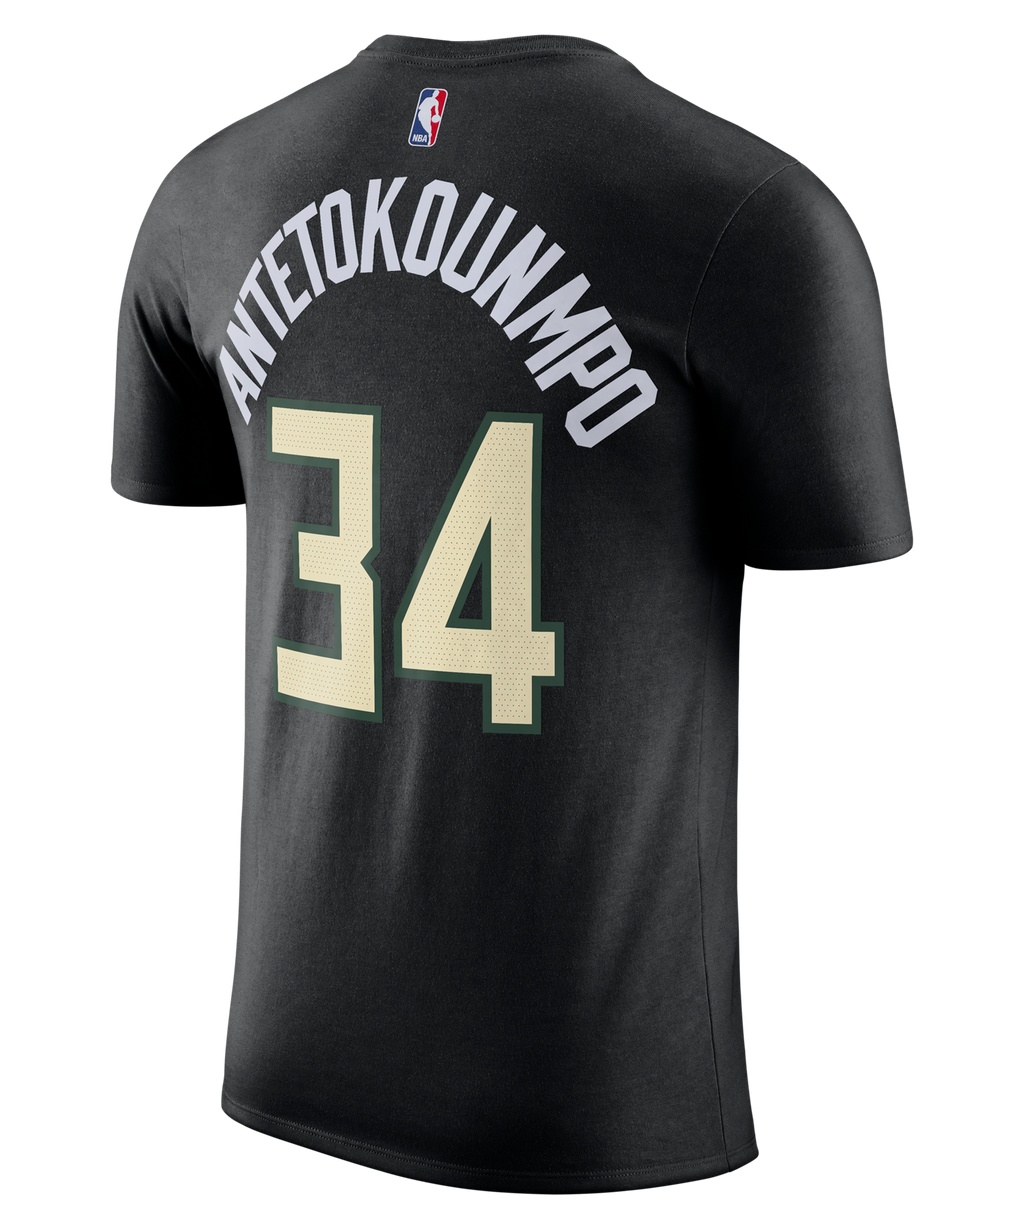 Giannis Antetokounmpo Milwaukee Bucks Jordan Statement Edition Name and Number Tee